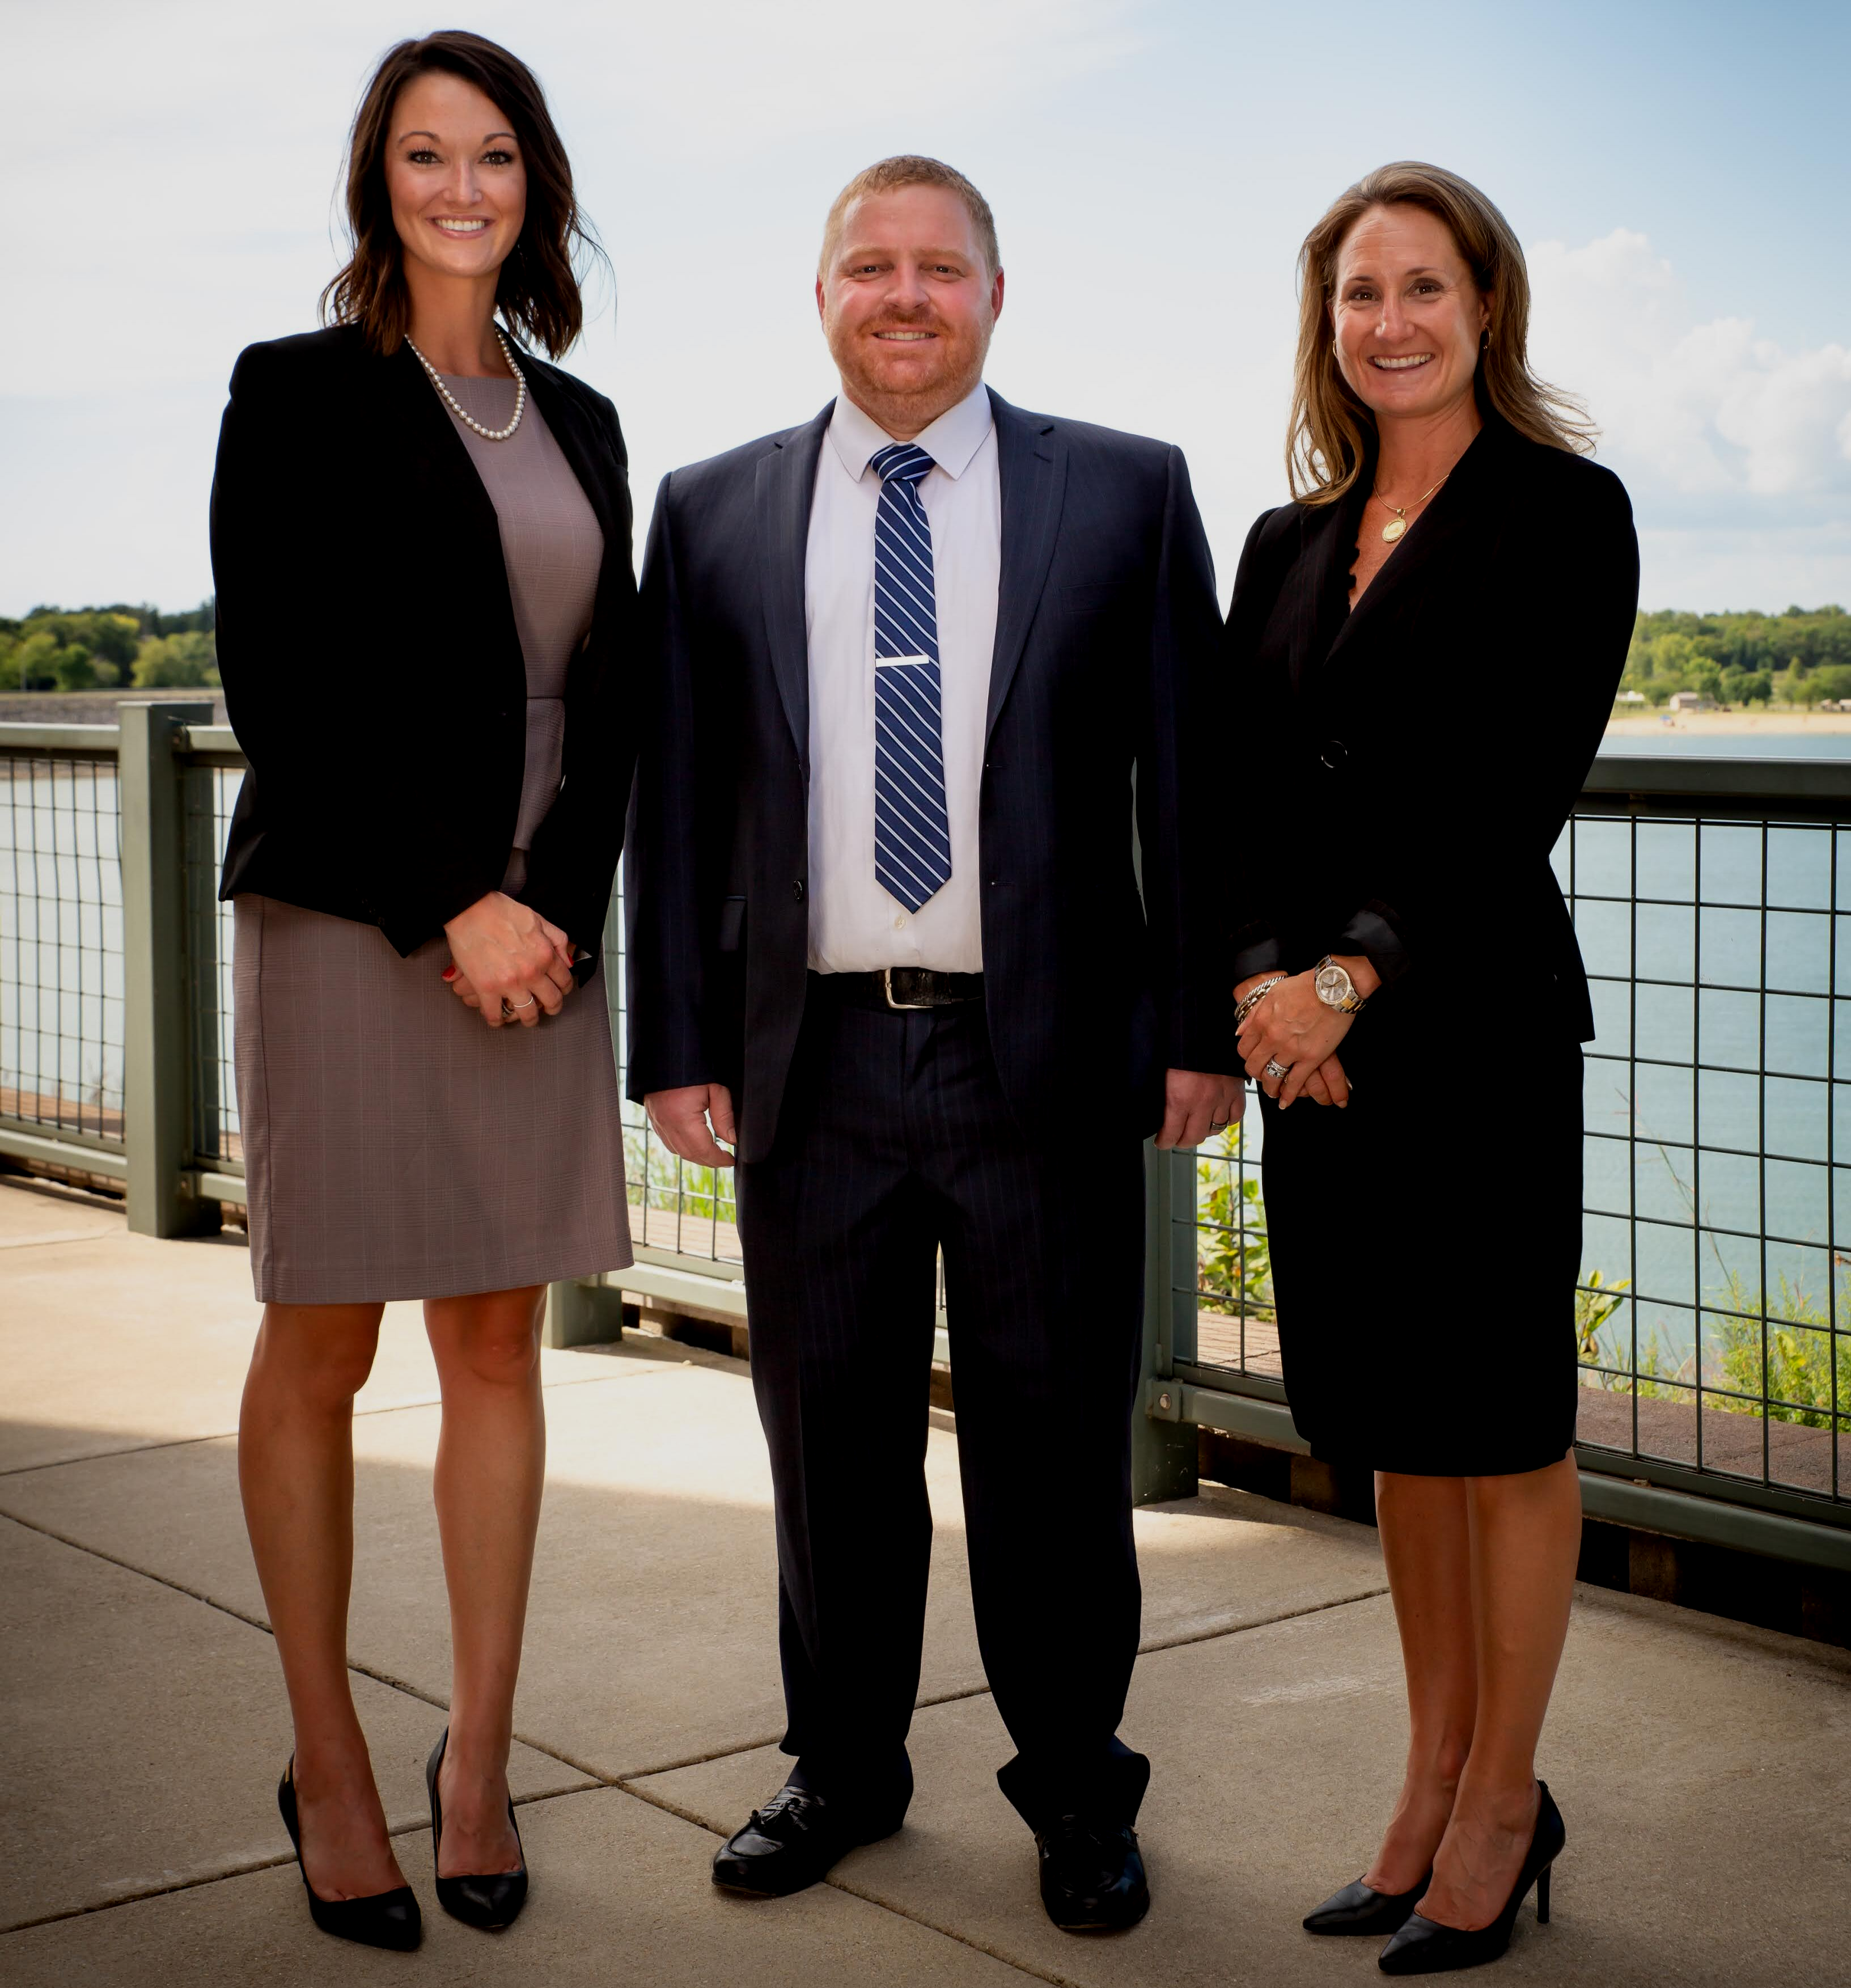 Dove and Dove Attorneys at Law